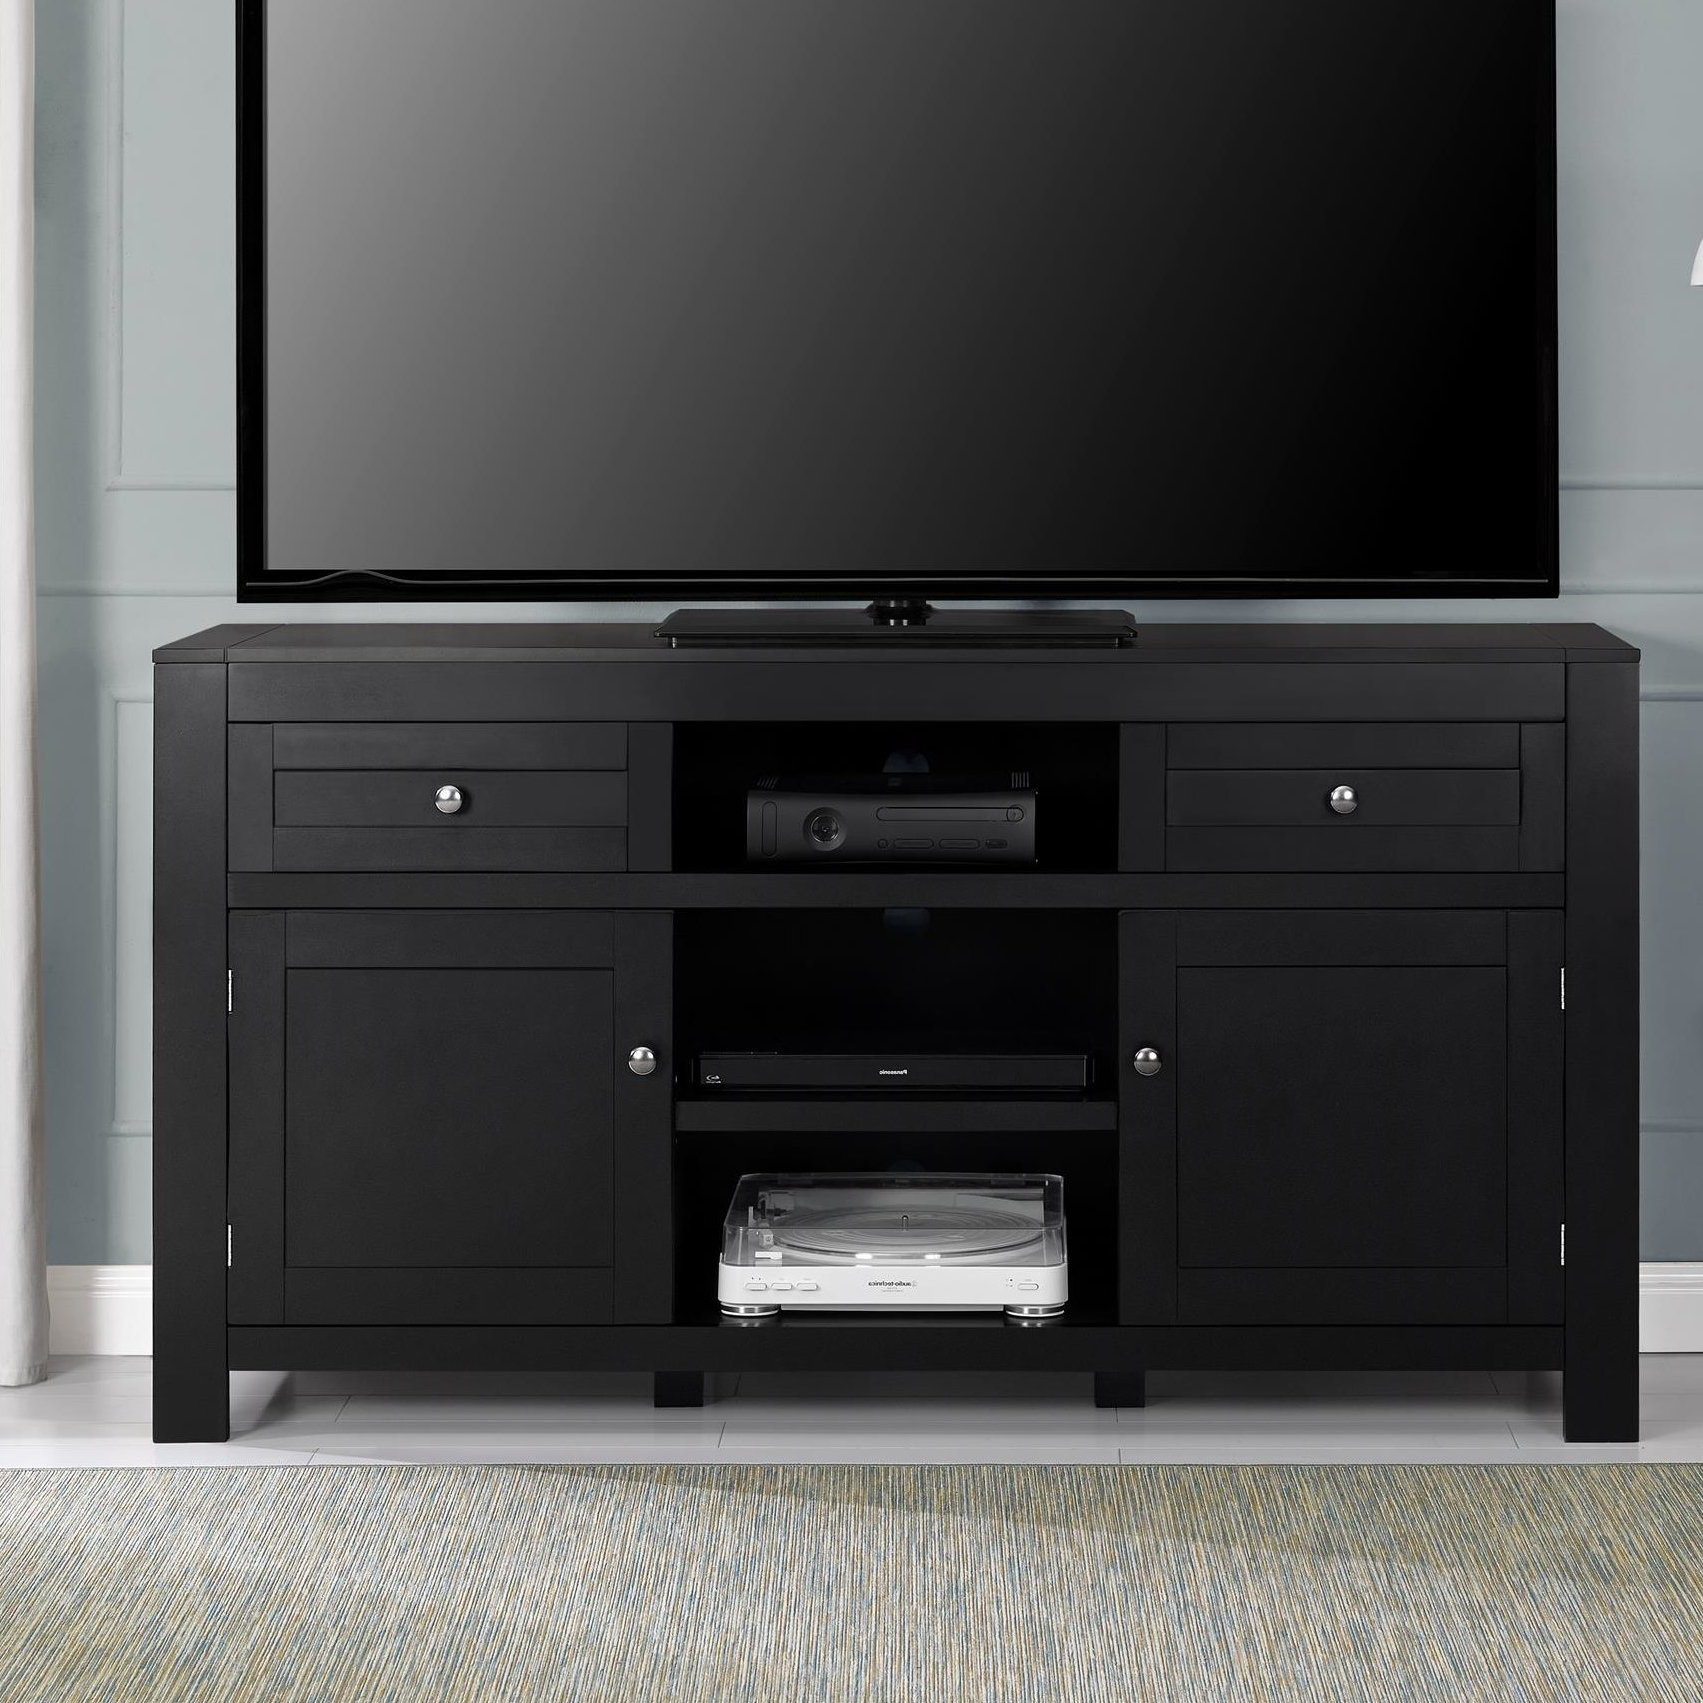 60 69 Inch Tv Stands You'll Love | Wayfair (View 15 of 20)